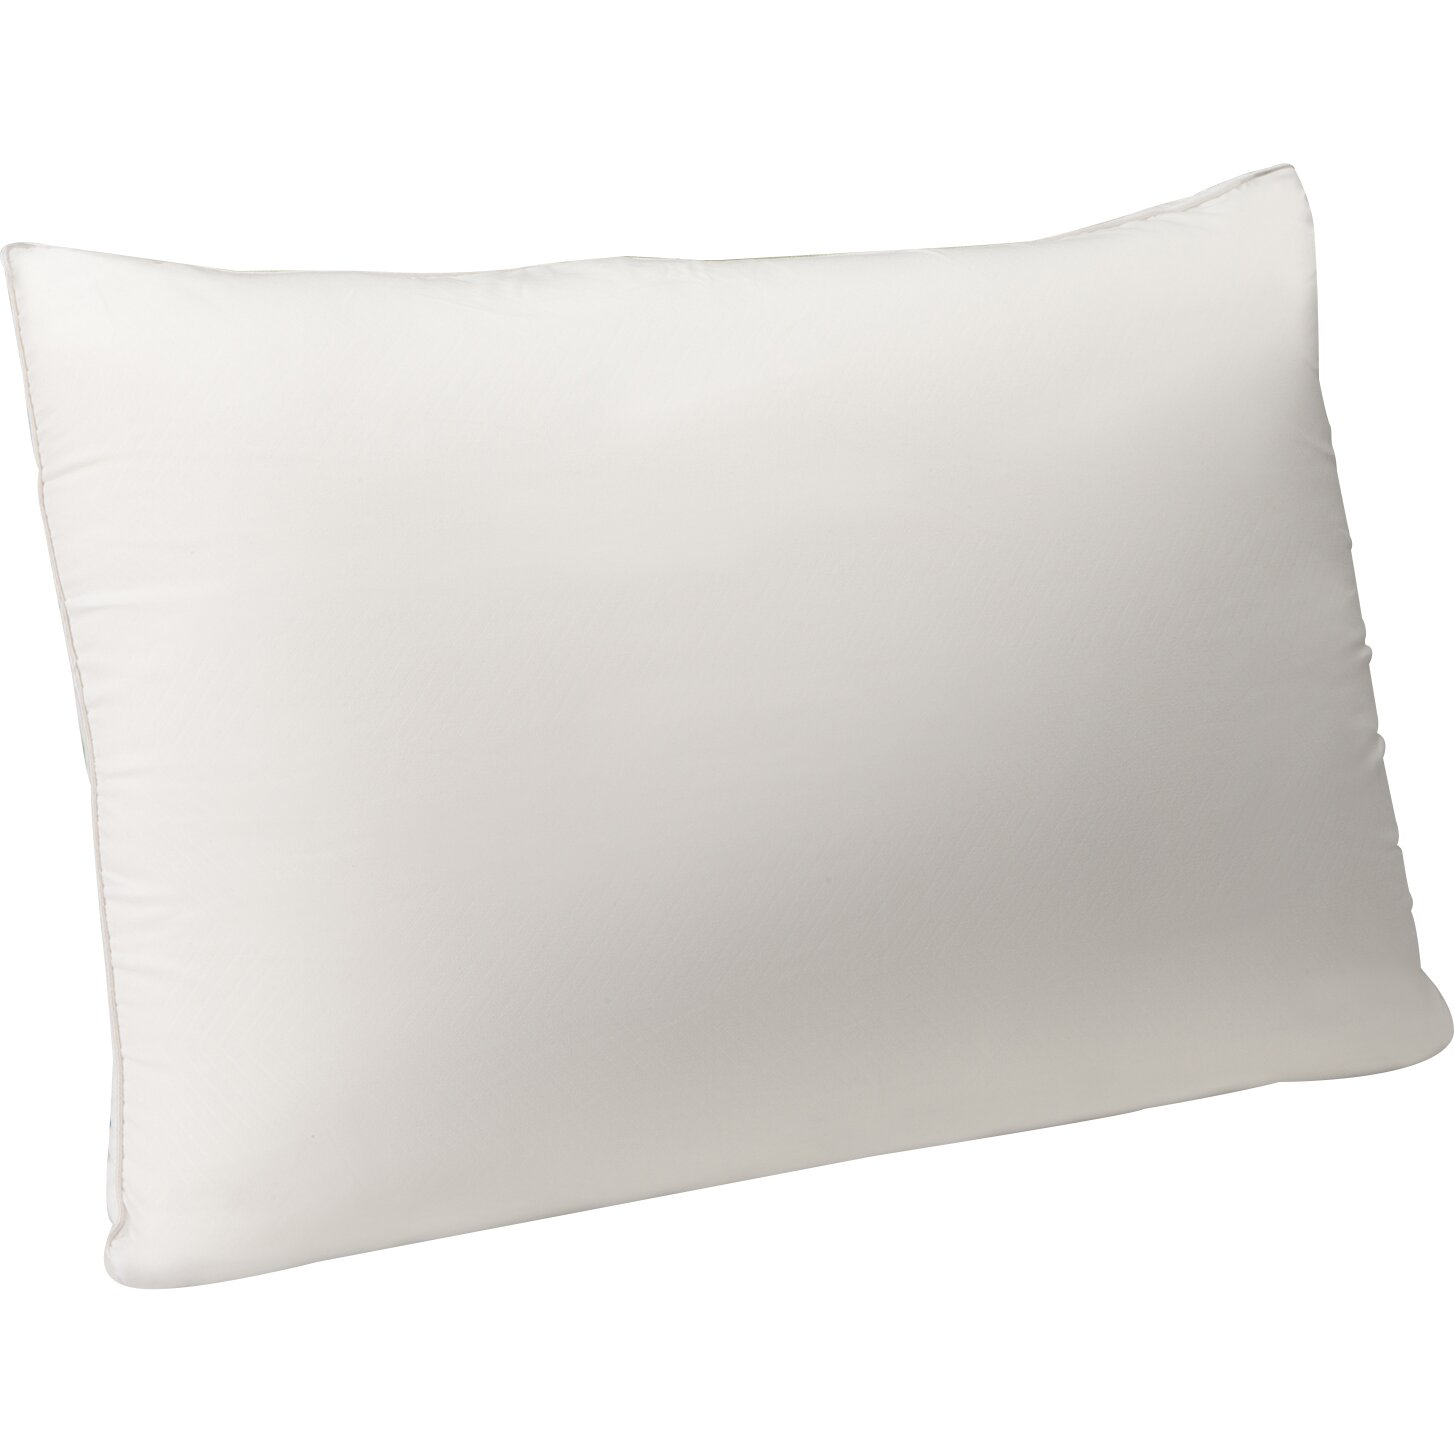 Comfort revolution comfort polyfill queen pillow wayfair for Comfort revolution king pillow